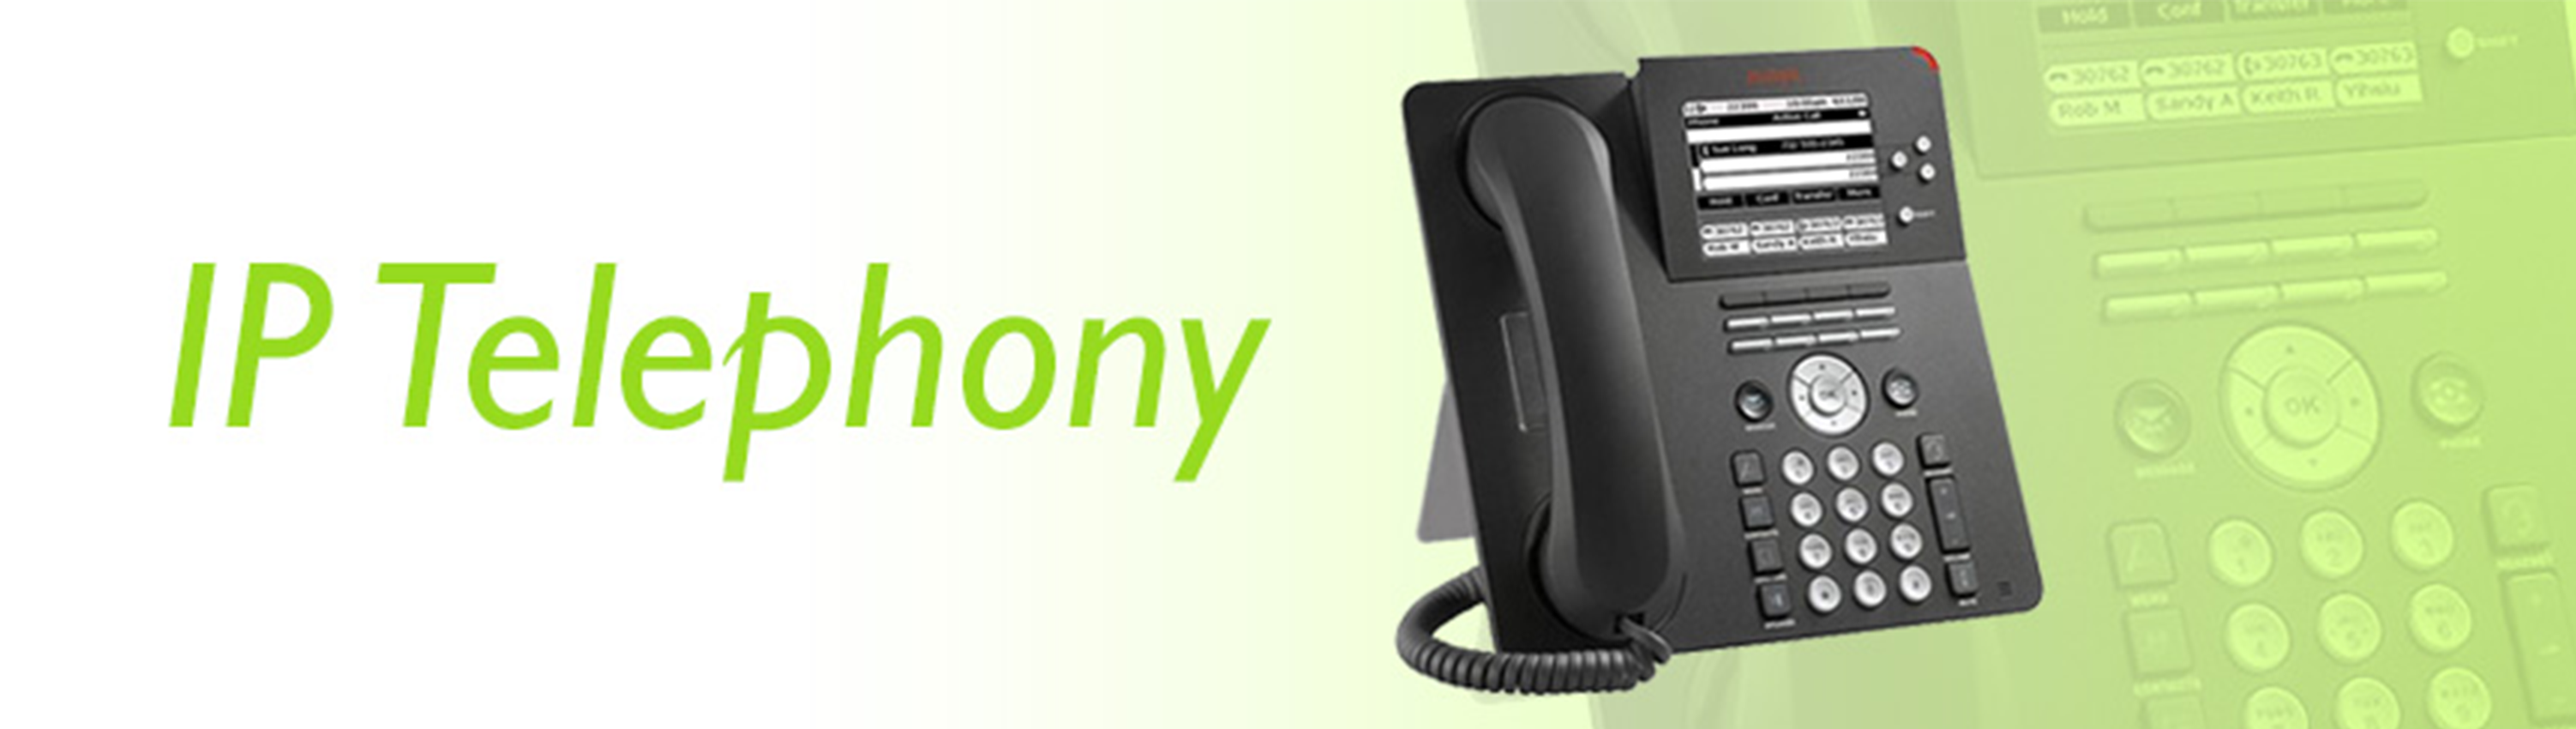 Bright Networks IP Telephony graphic Image